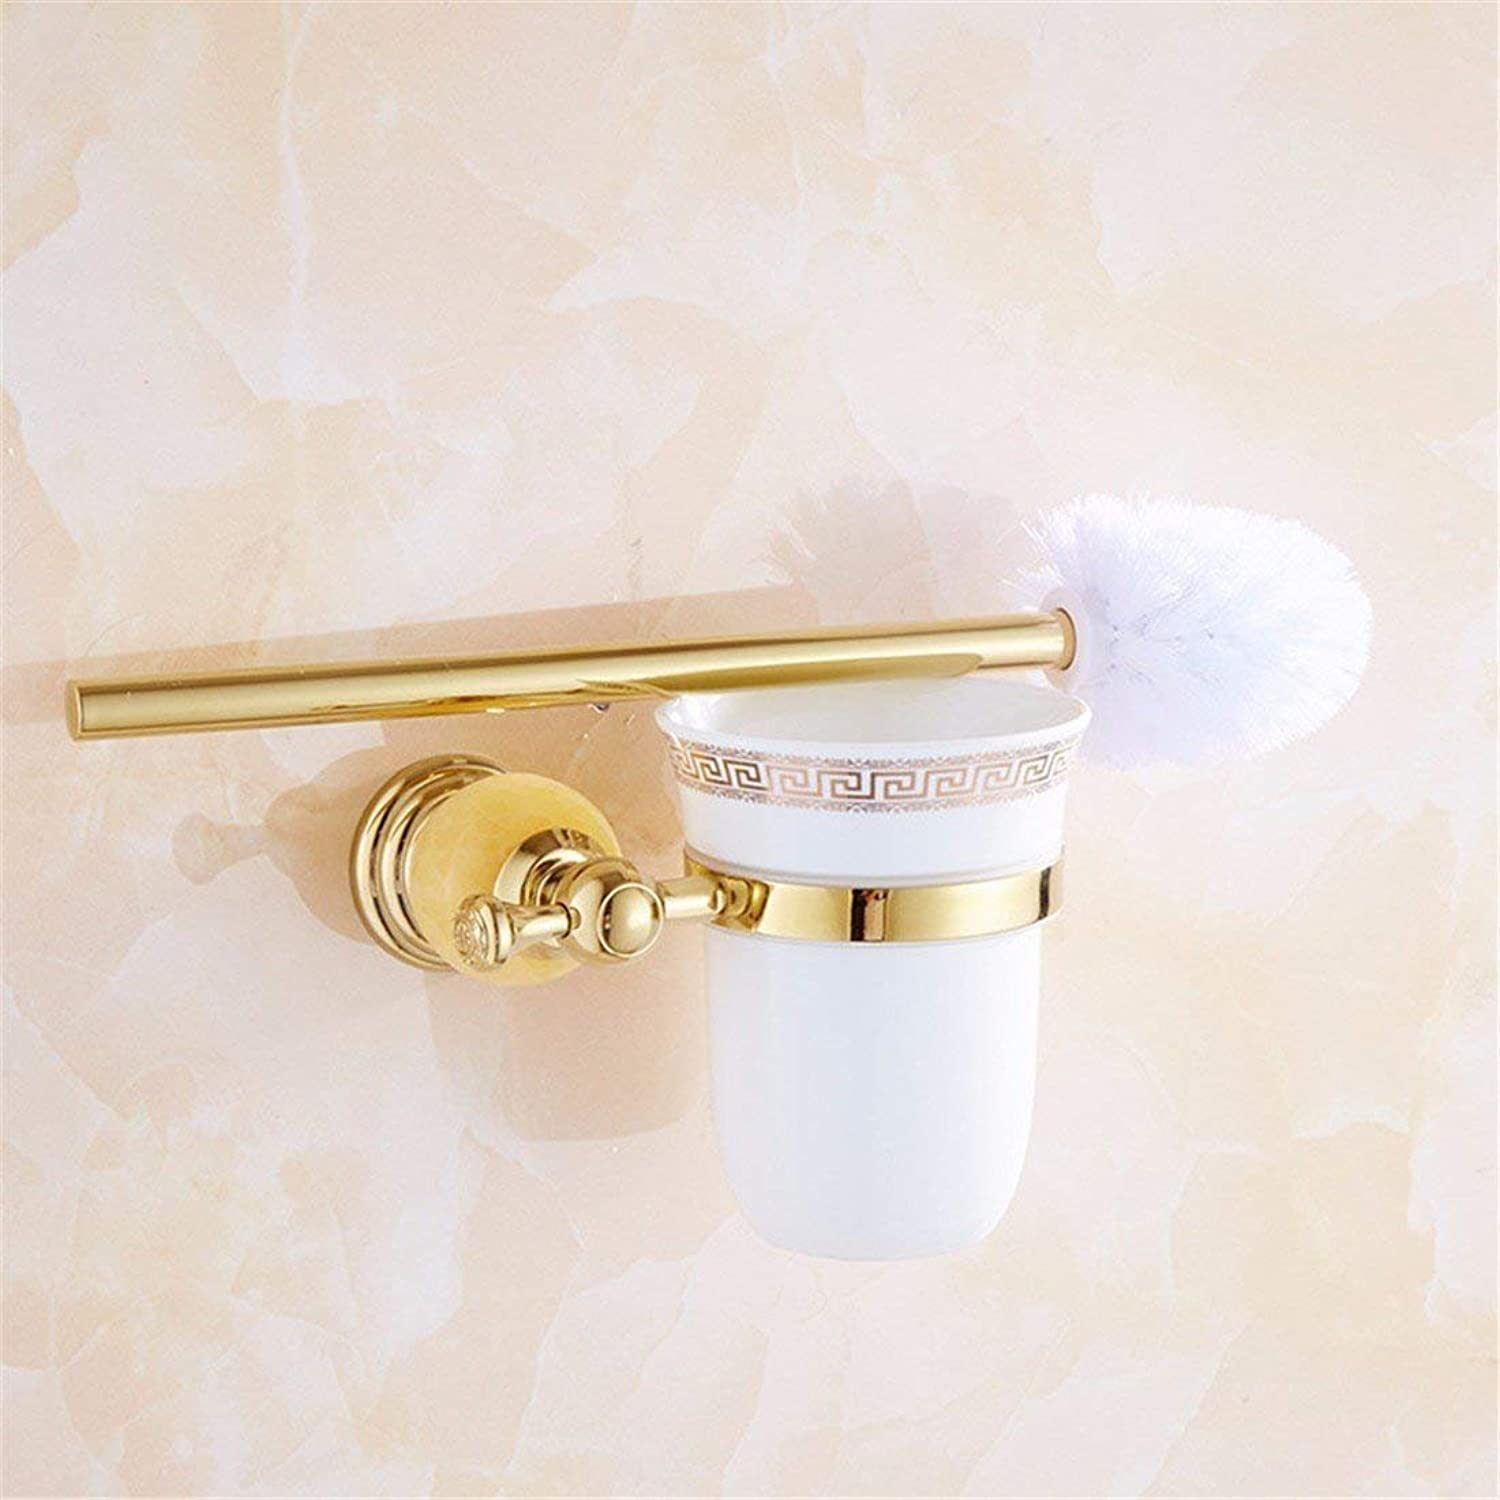 In Stainless Steel European Style Jade gold Christmas, Equipment of Door Room-soap Toilet Brush Toilet Brush Mounted in a Rack